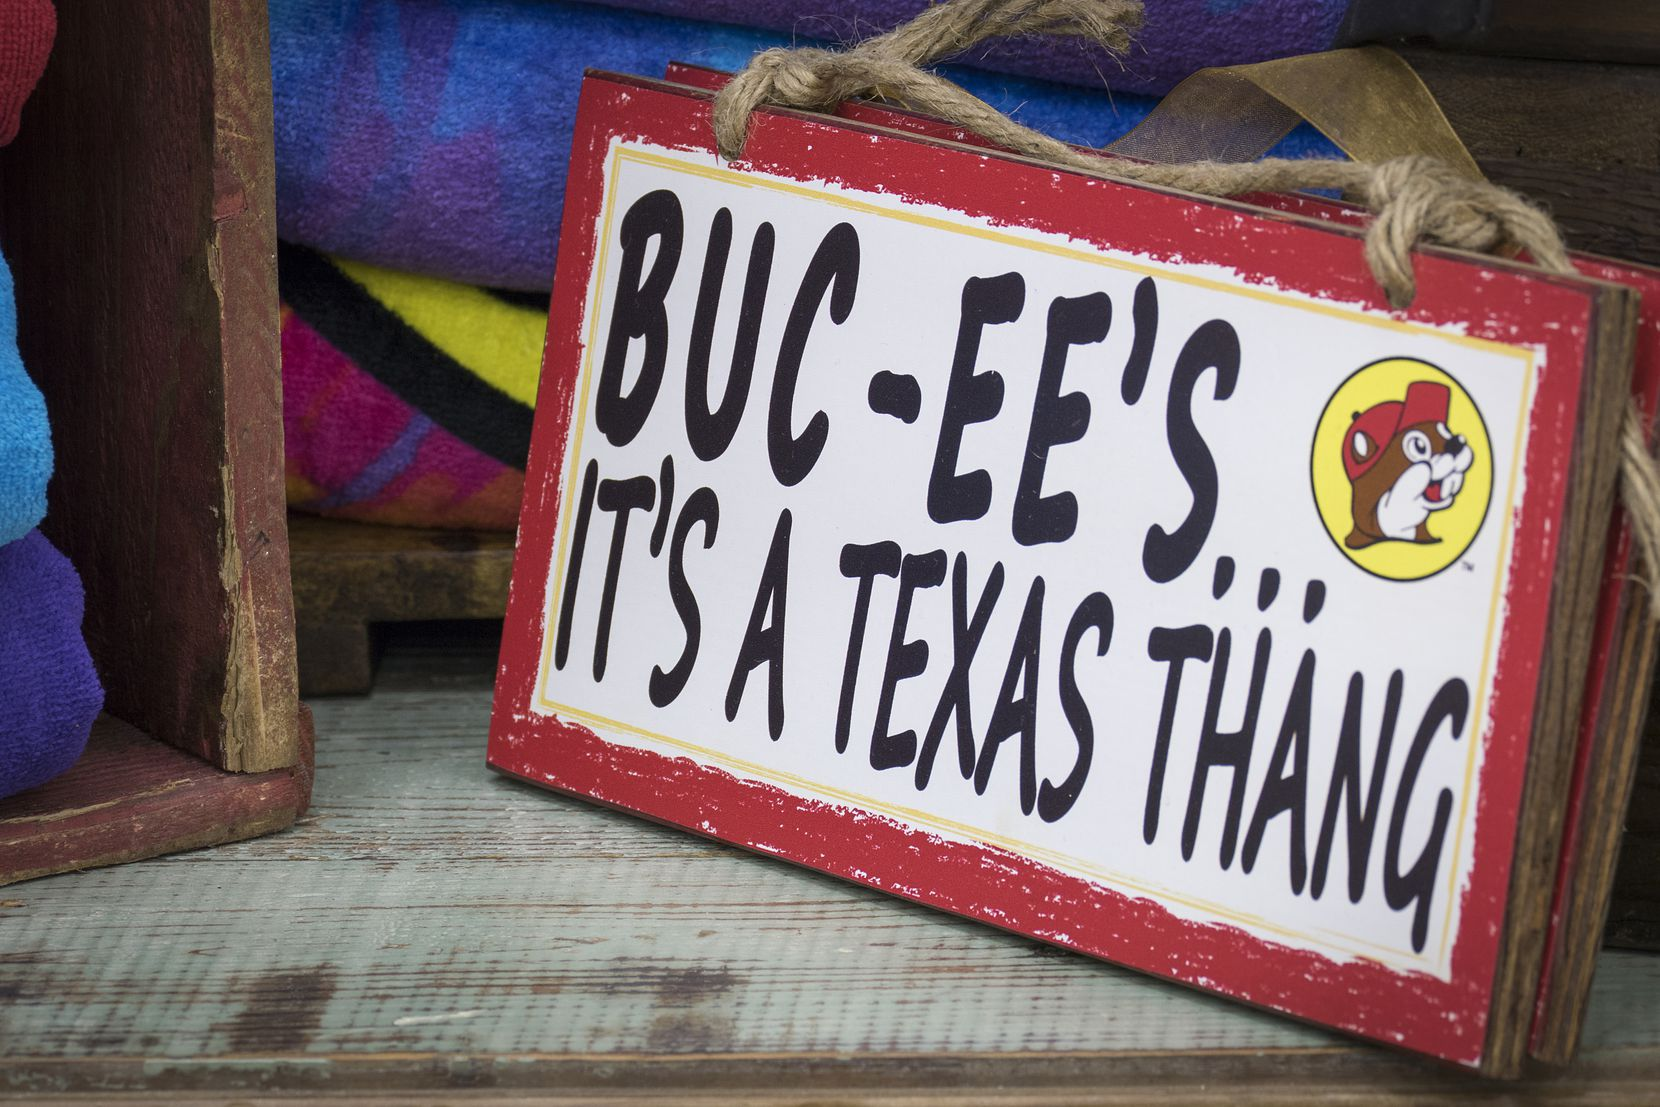 A gigantic Buc-ees travel center along I-35 is a popular tourist stop between San Antonio and Austin. (Dallas Morning News File Photo)